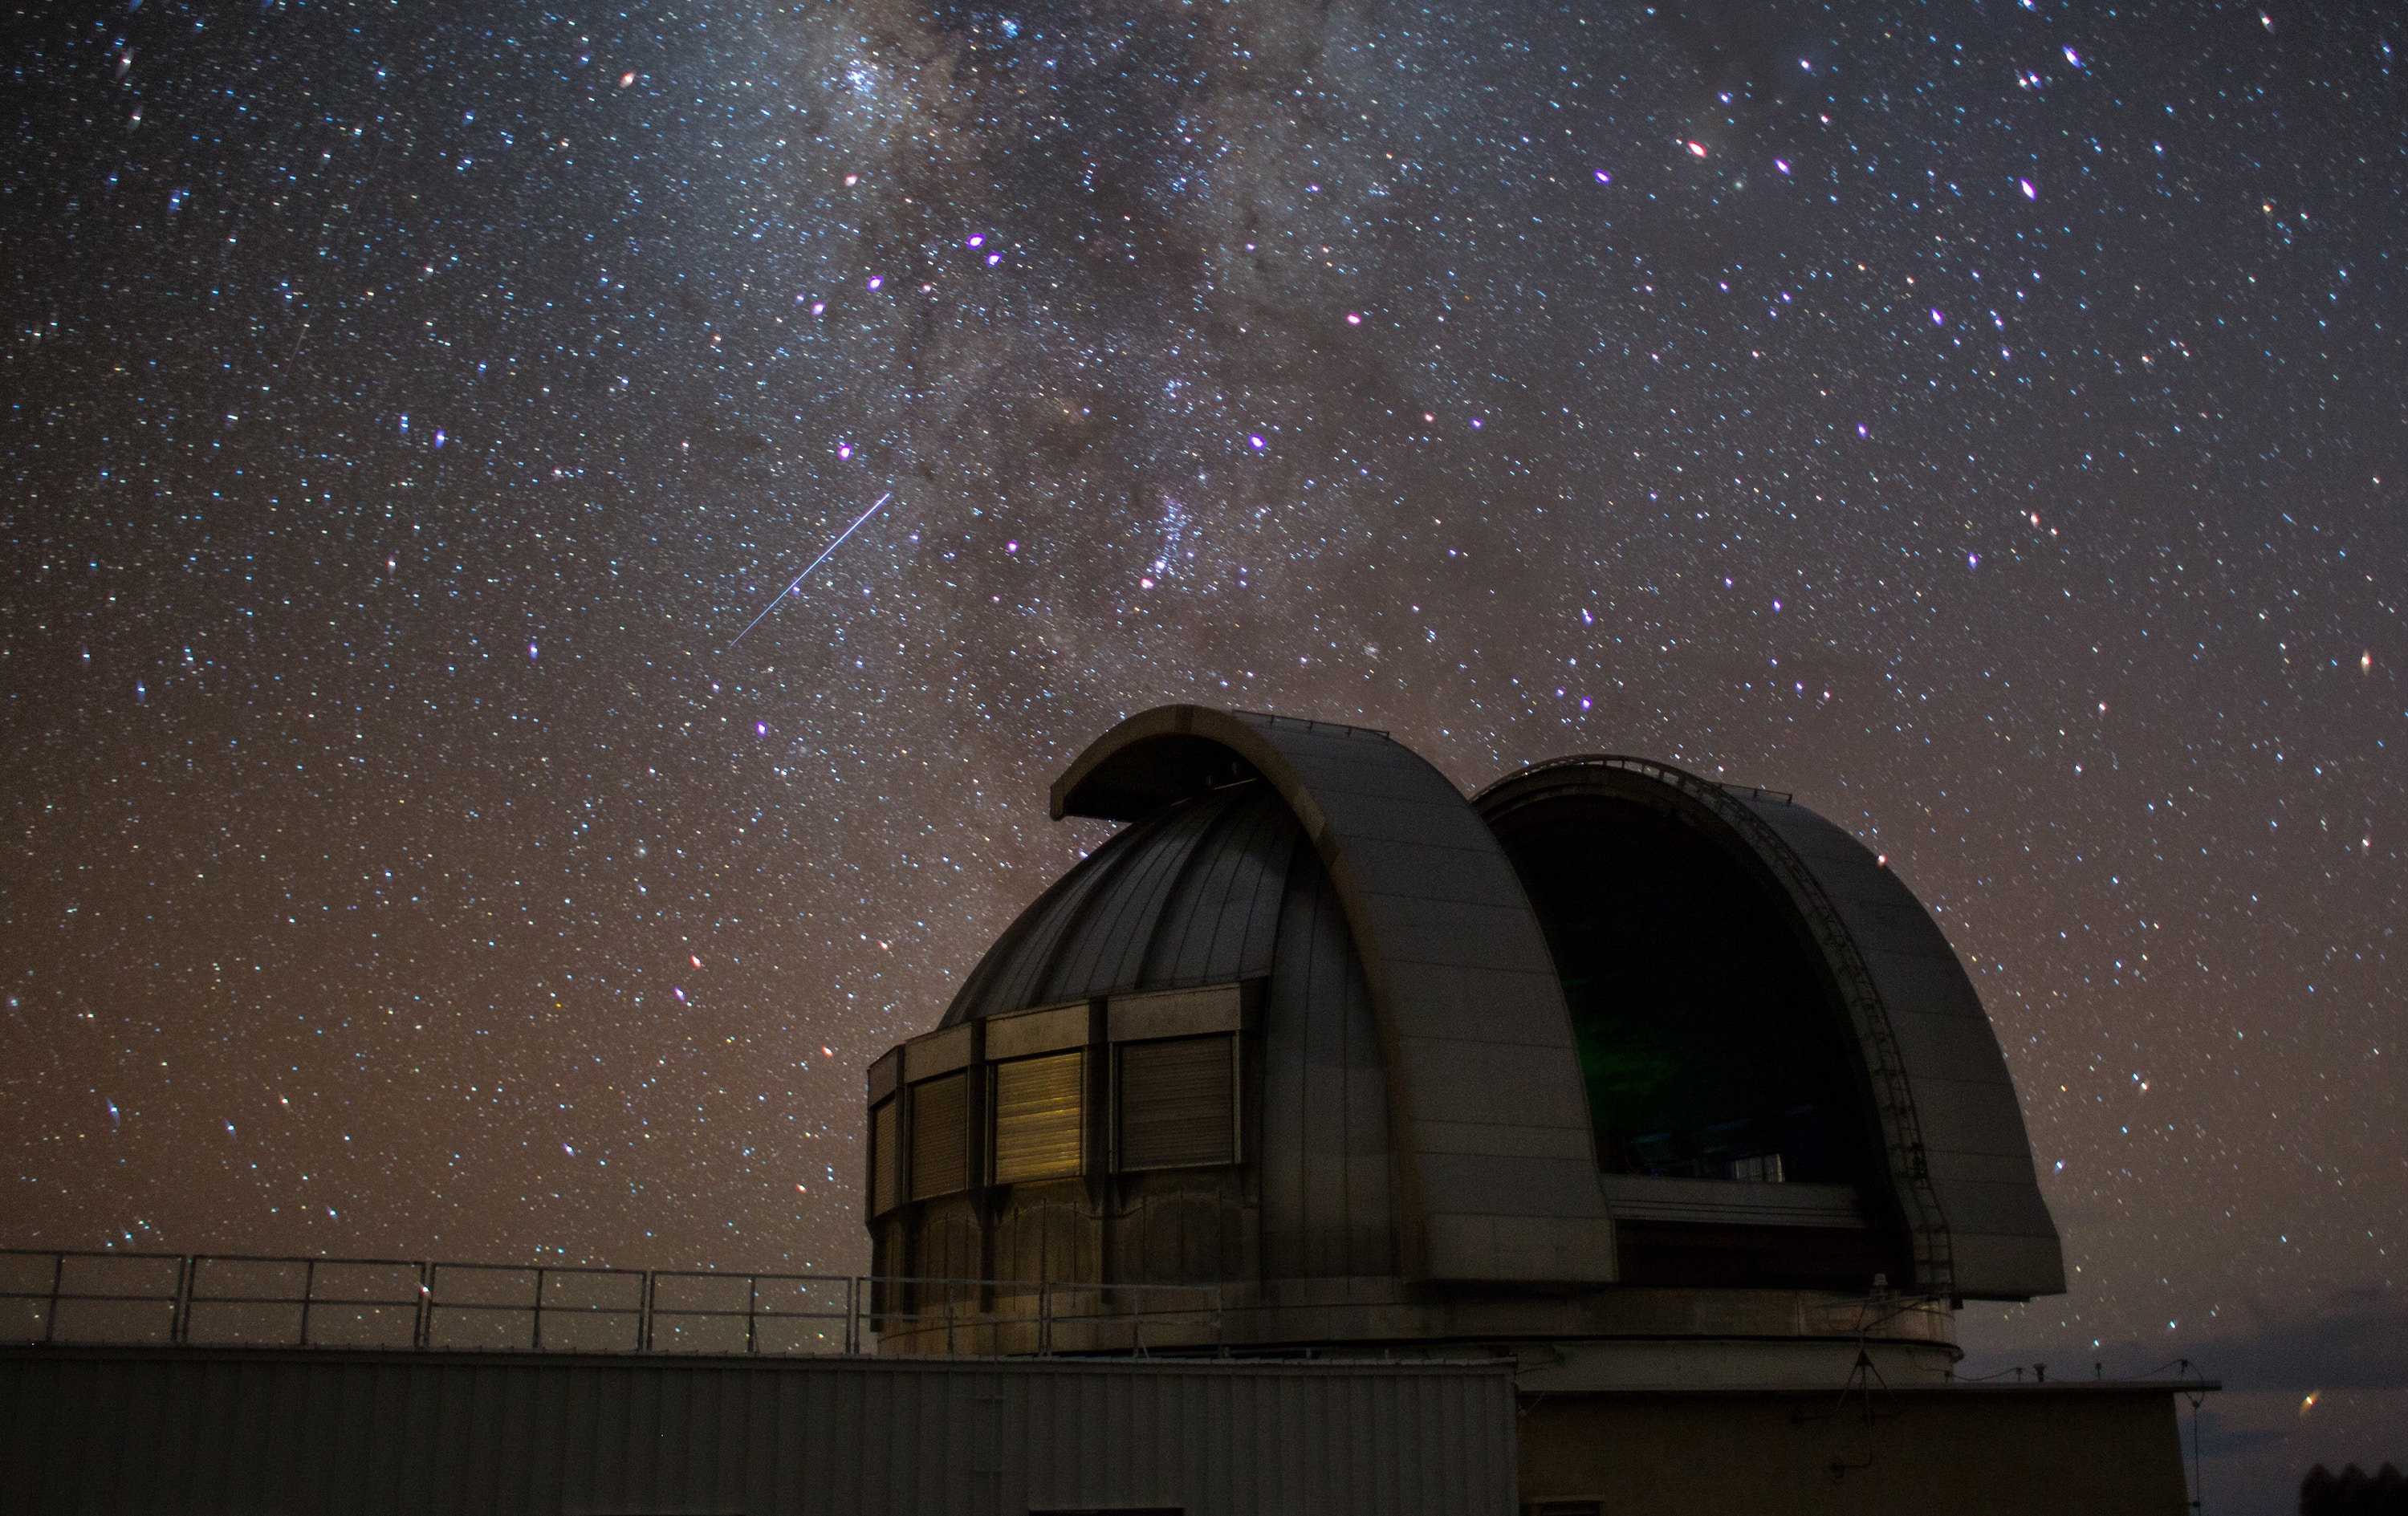 An observatory at night with stars